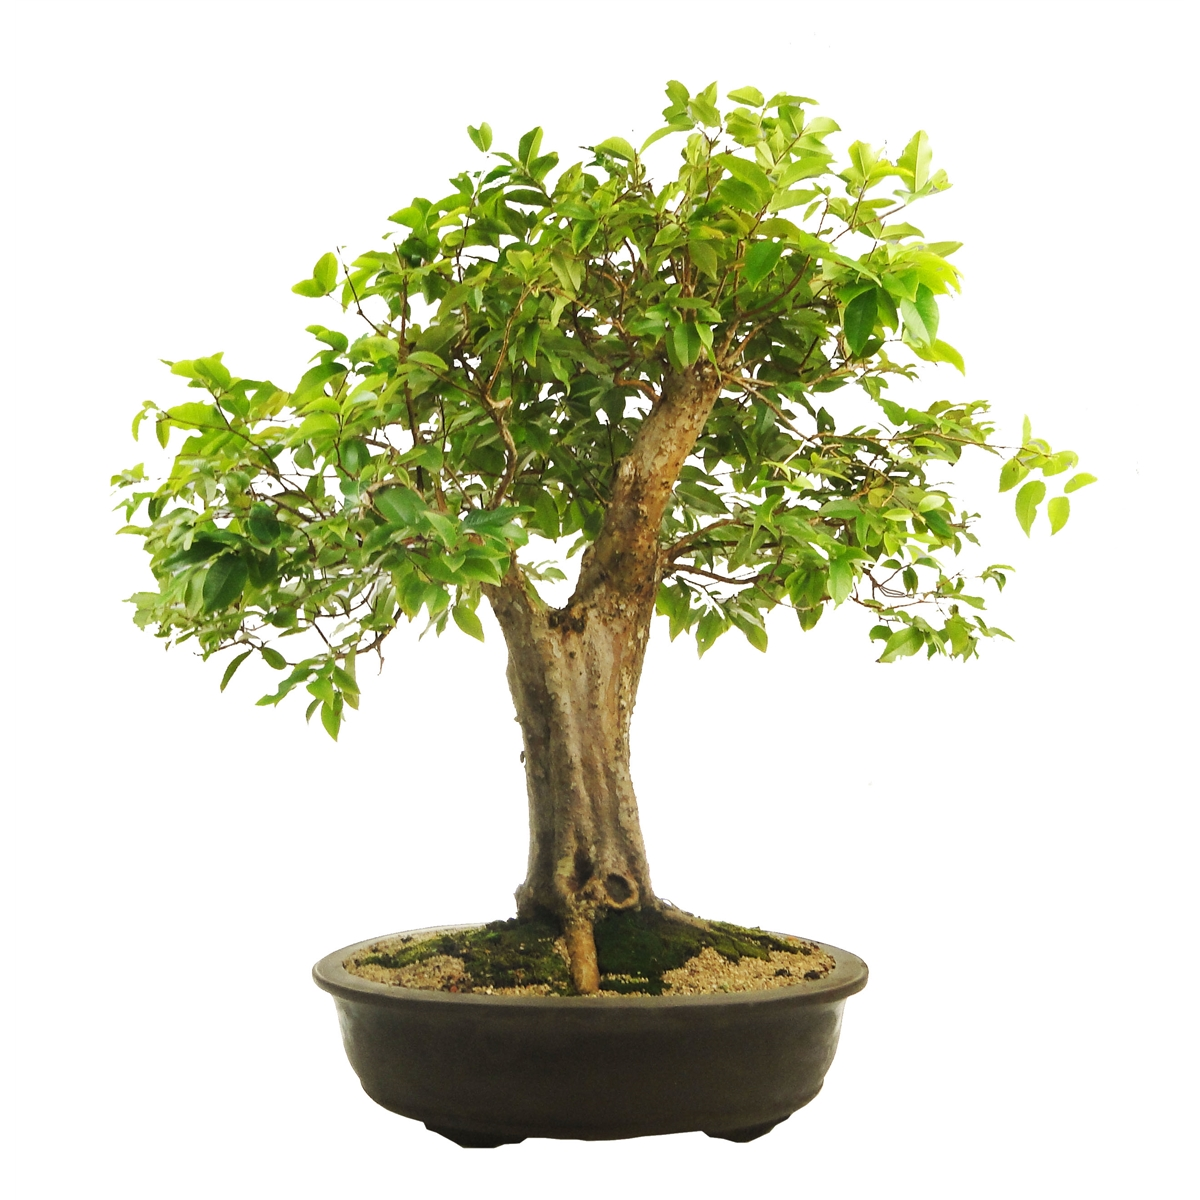 Bonsai Ficus Microcarpa Ginseng Pflege 5 Indoor Plants And Flowers You Should Get Home This Summer